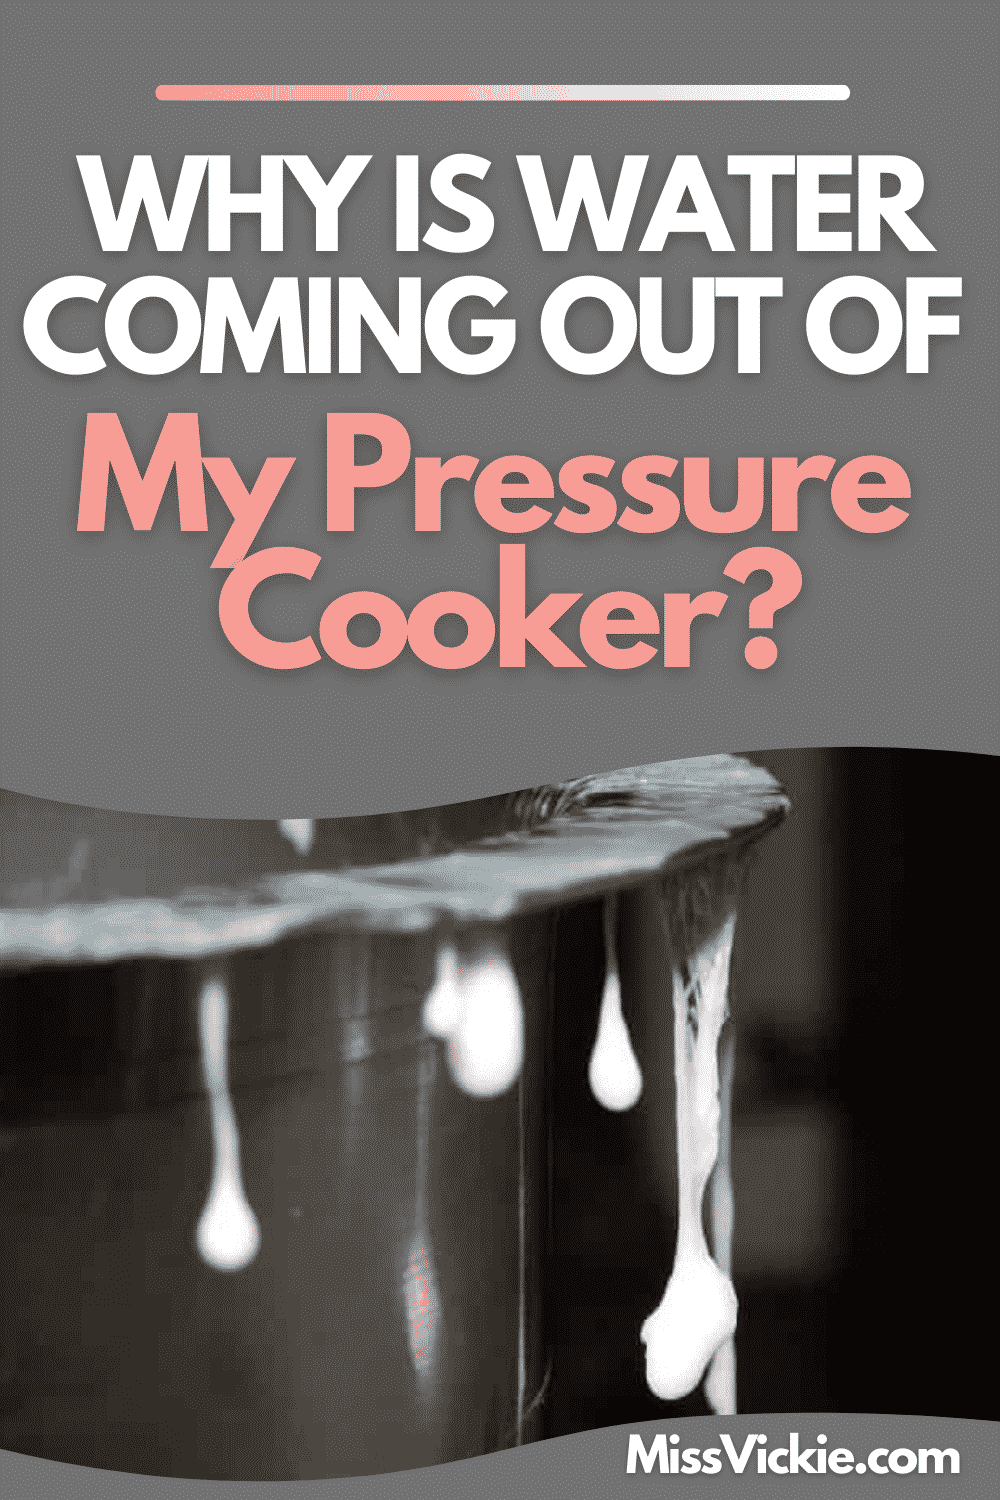 Why Is Water Coming Out Of My Pressure Cooker